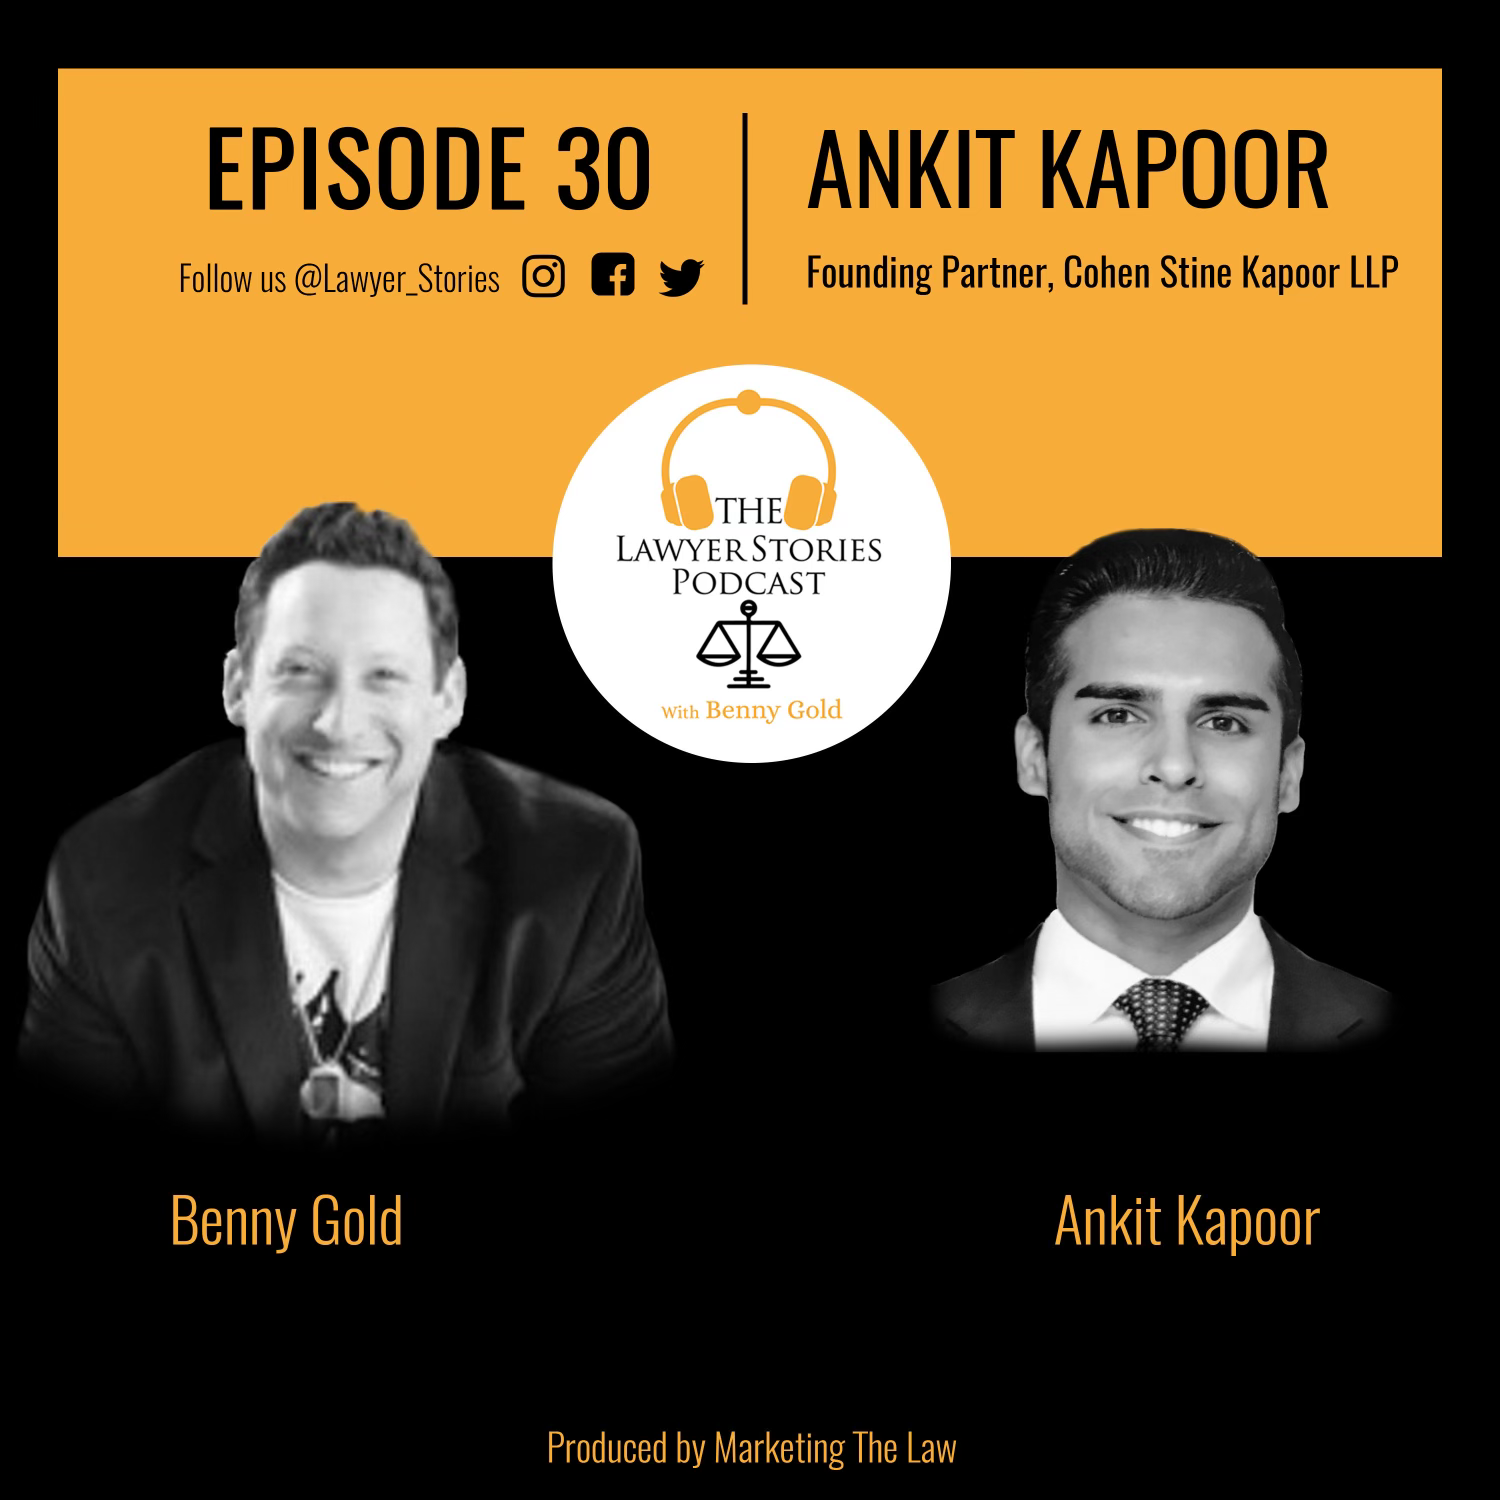 The Lawyer Stories Podcast Episode 30 featuring Ankit Kapoor, founding partner of Cohen Stine Kapoor